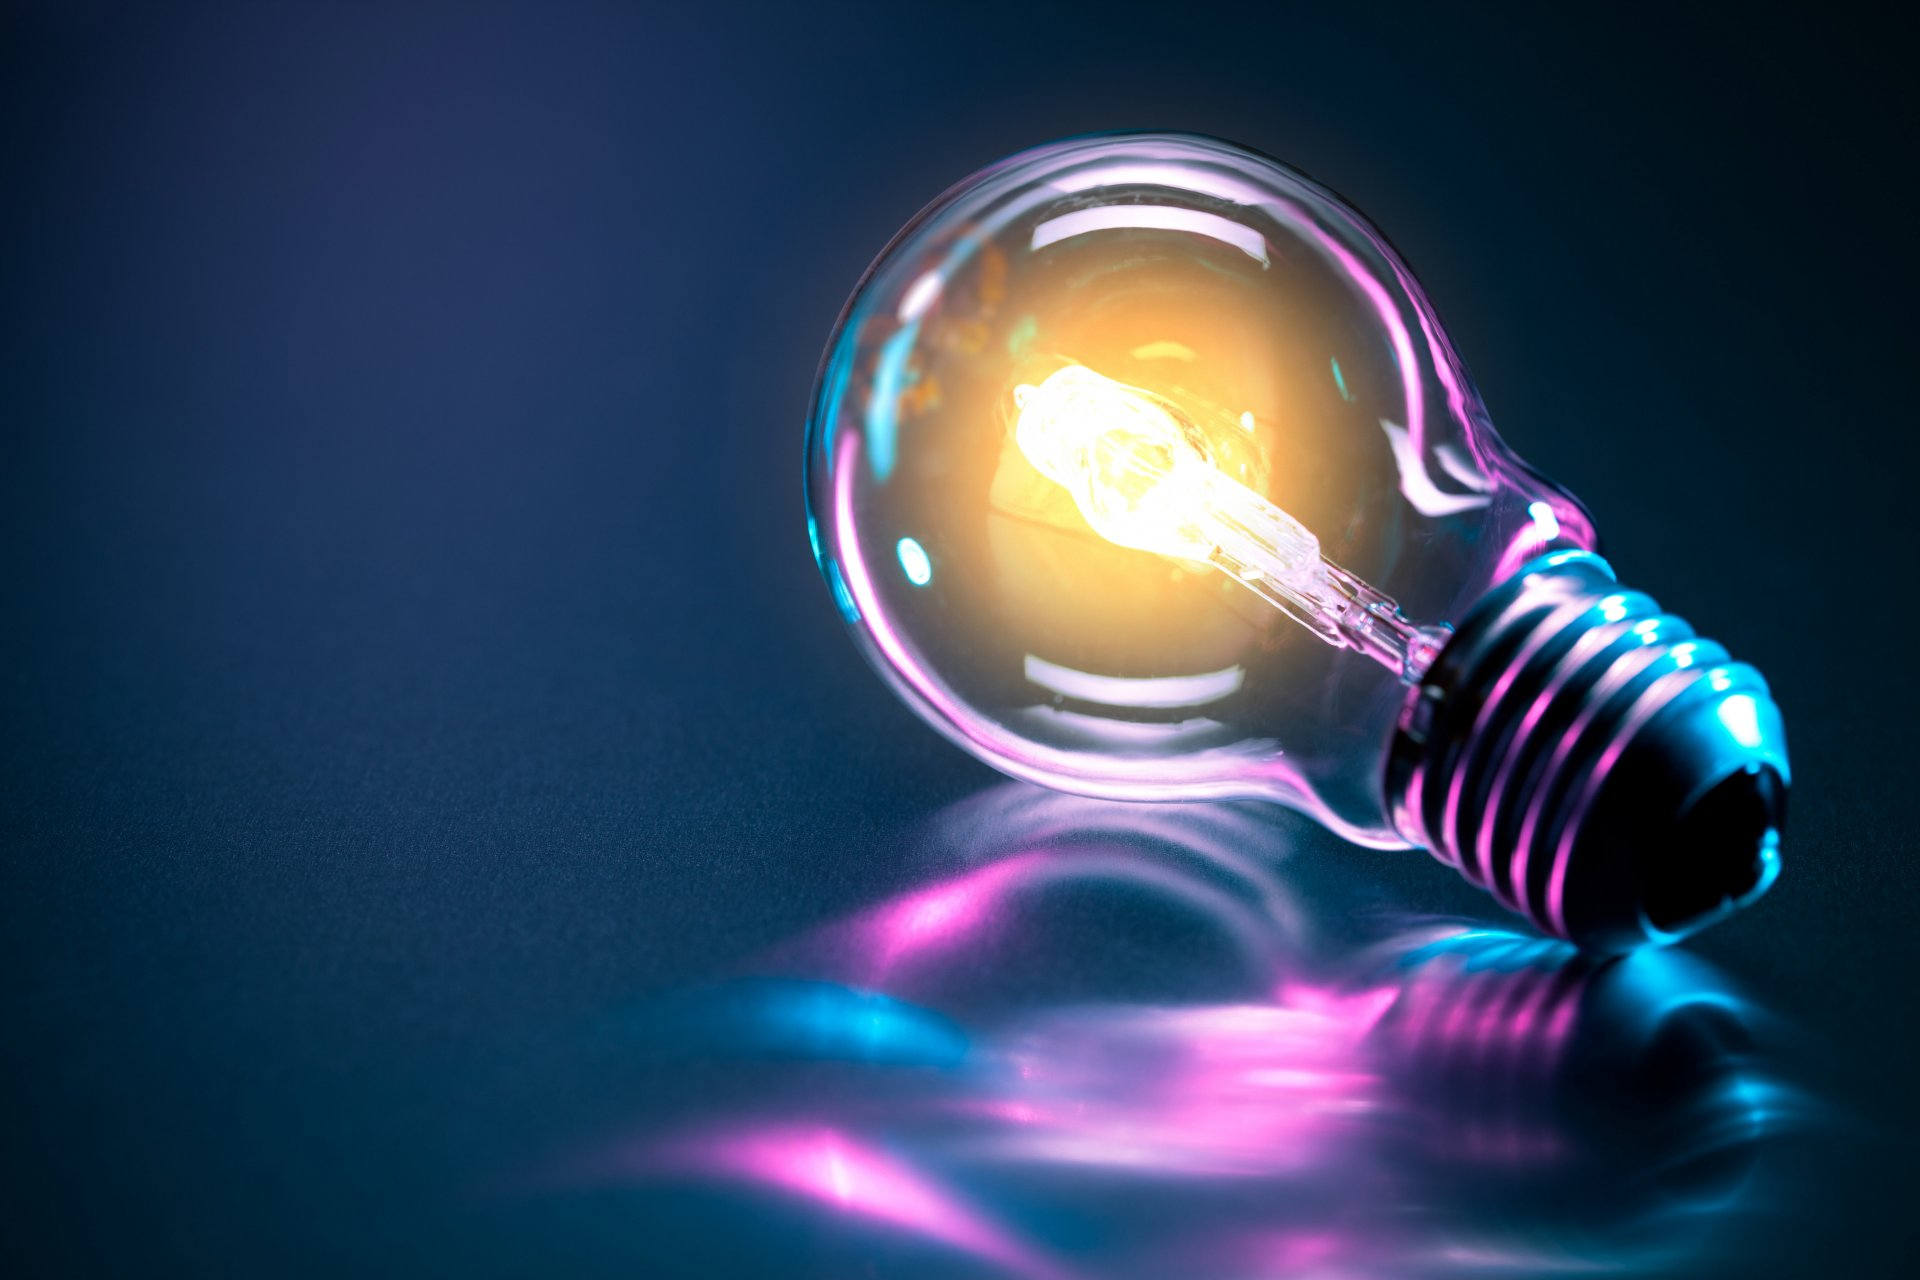 art light tungsten power glass bulb transmitter wire multicolored reflection beautiful background abstract 3d wallpaper.